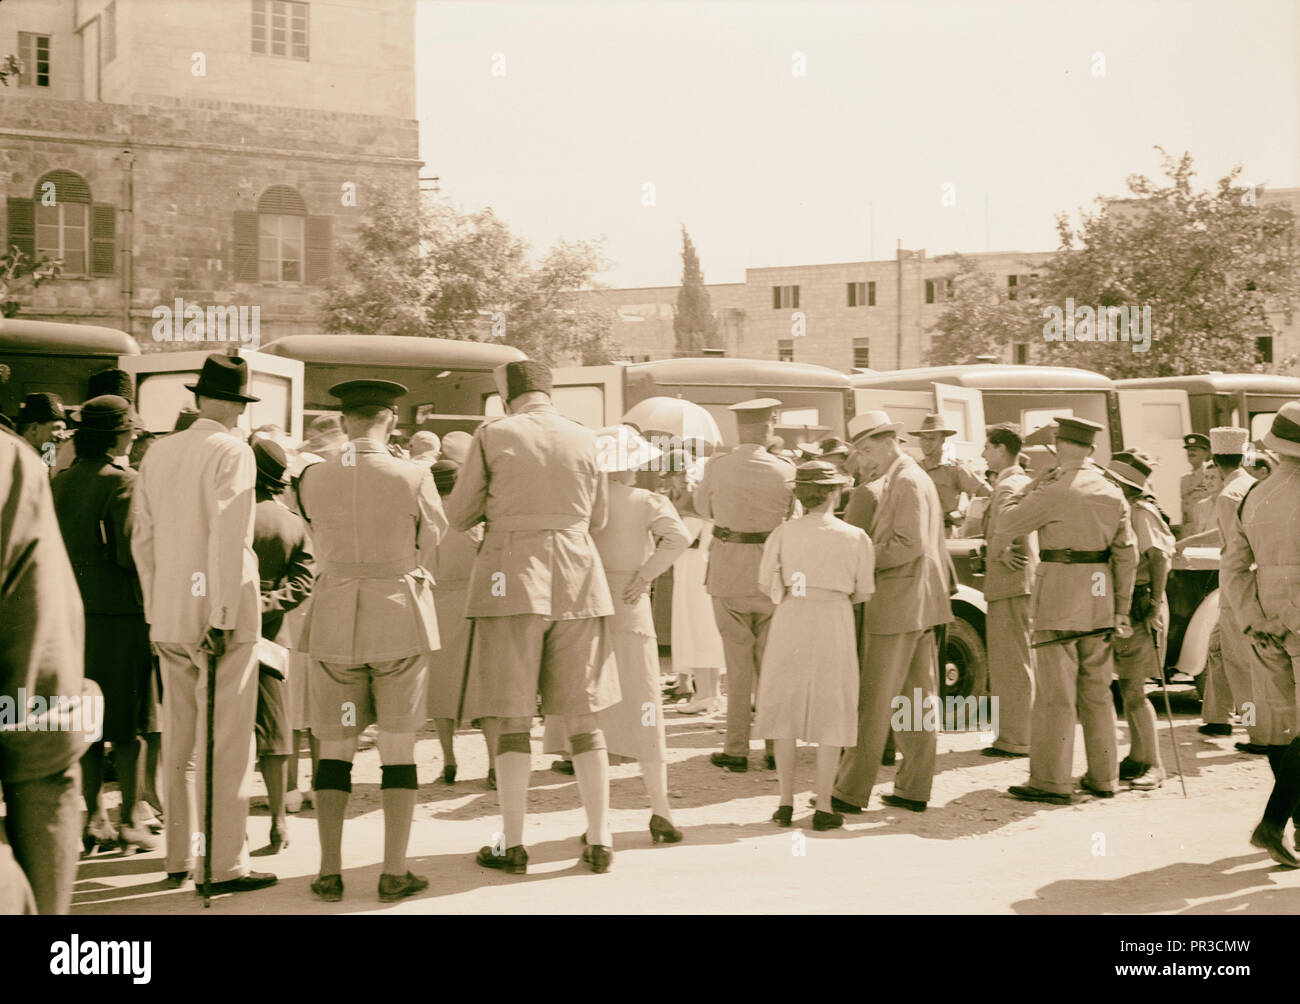 Australian gift to British Red Cross of 9 Red Cross ambulances Ambulances being inspected after the presentation. 1940, Israel - Stock Image